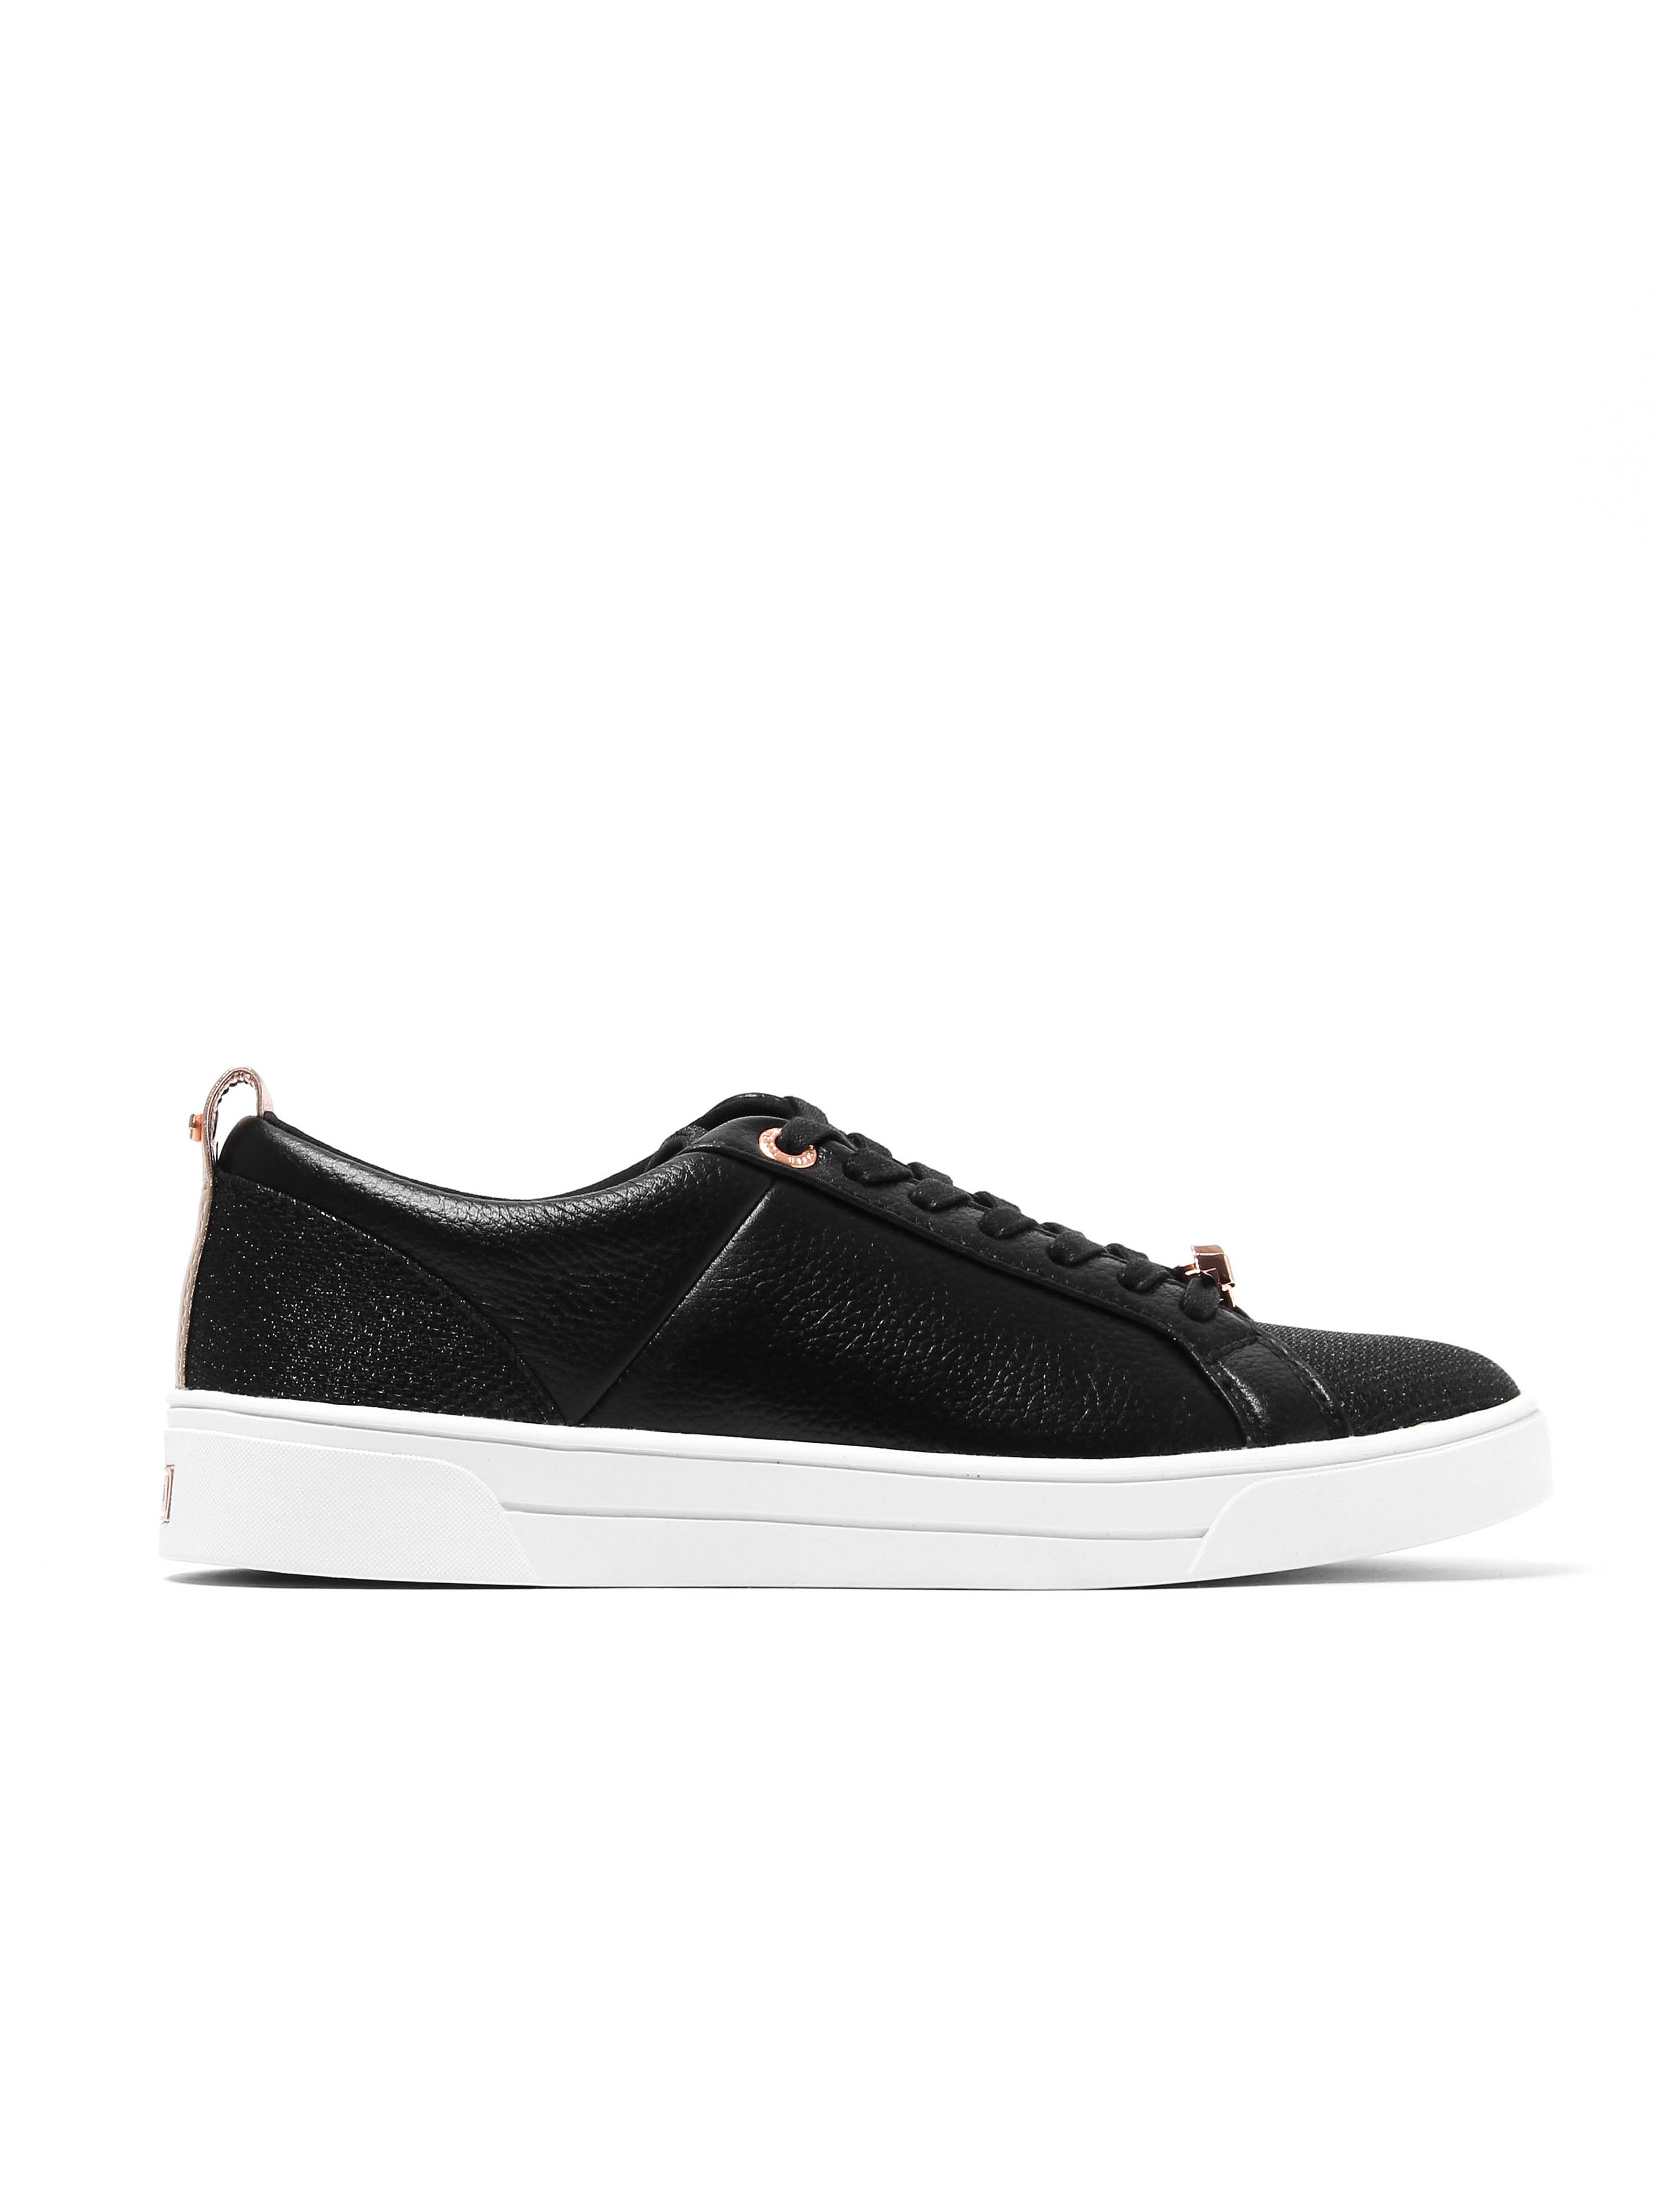 Ted Baker Women's Kulei Trainers - Black Lurex